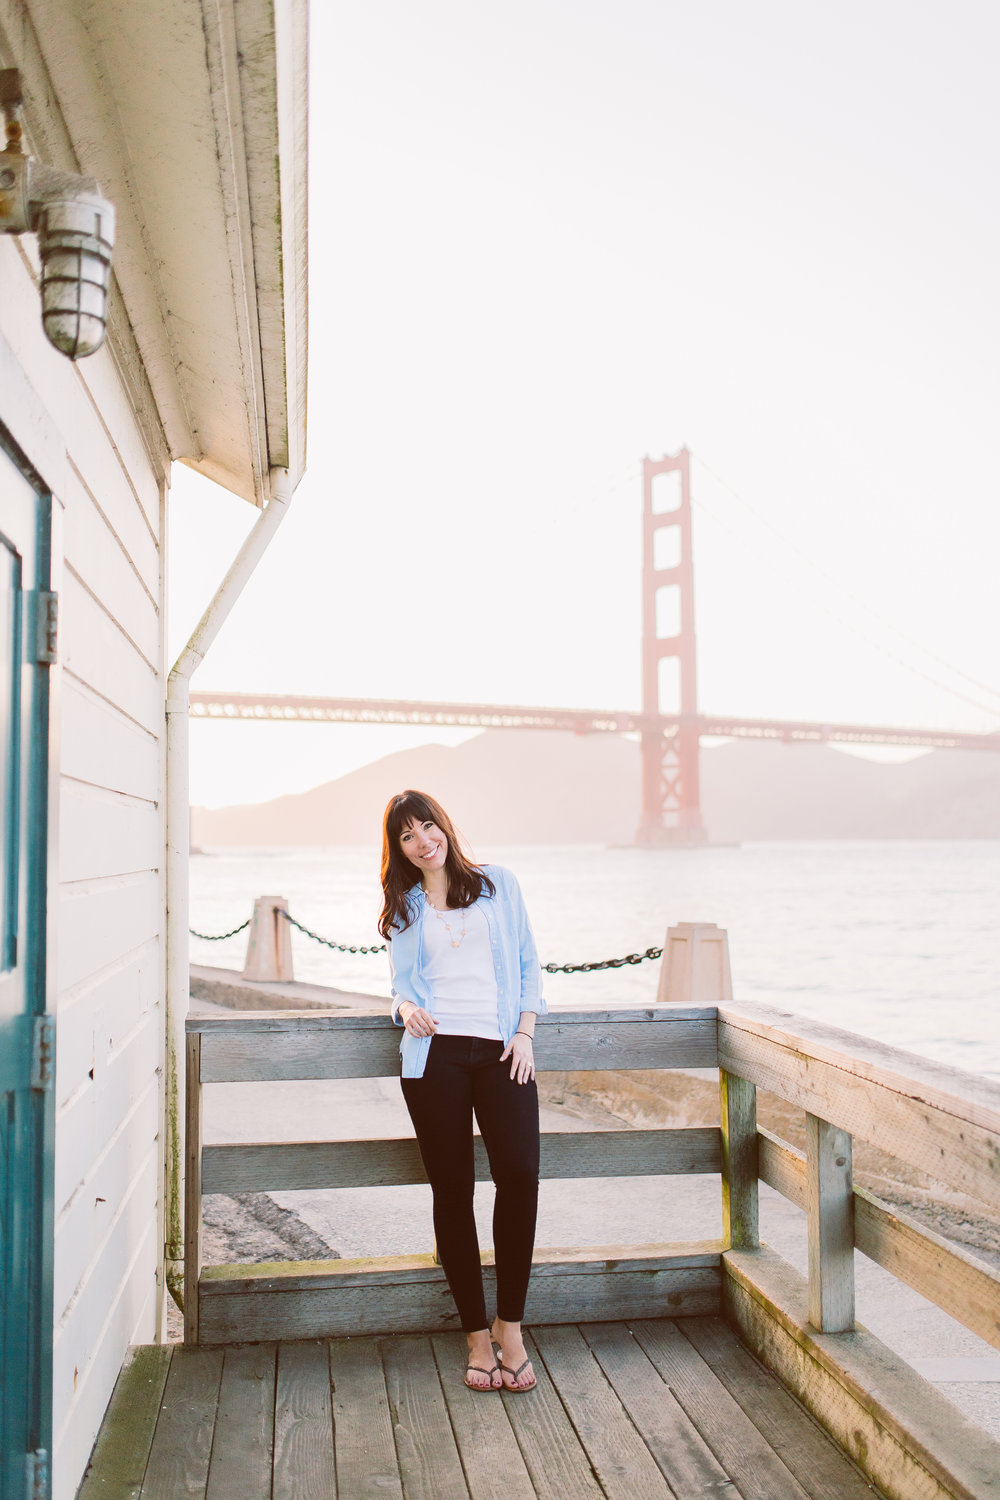 San Francisco Warming Hut Instagram spot